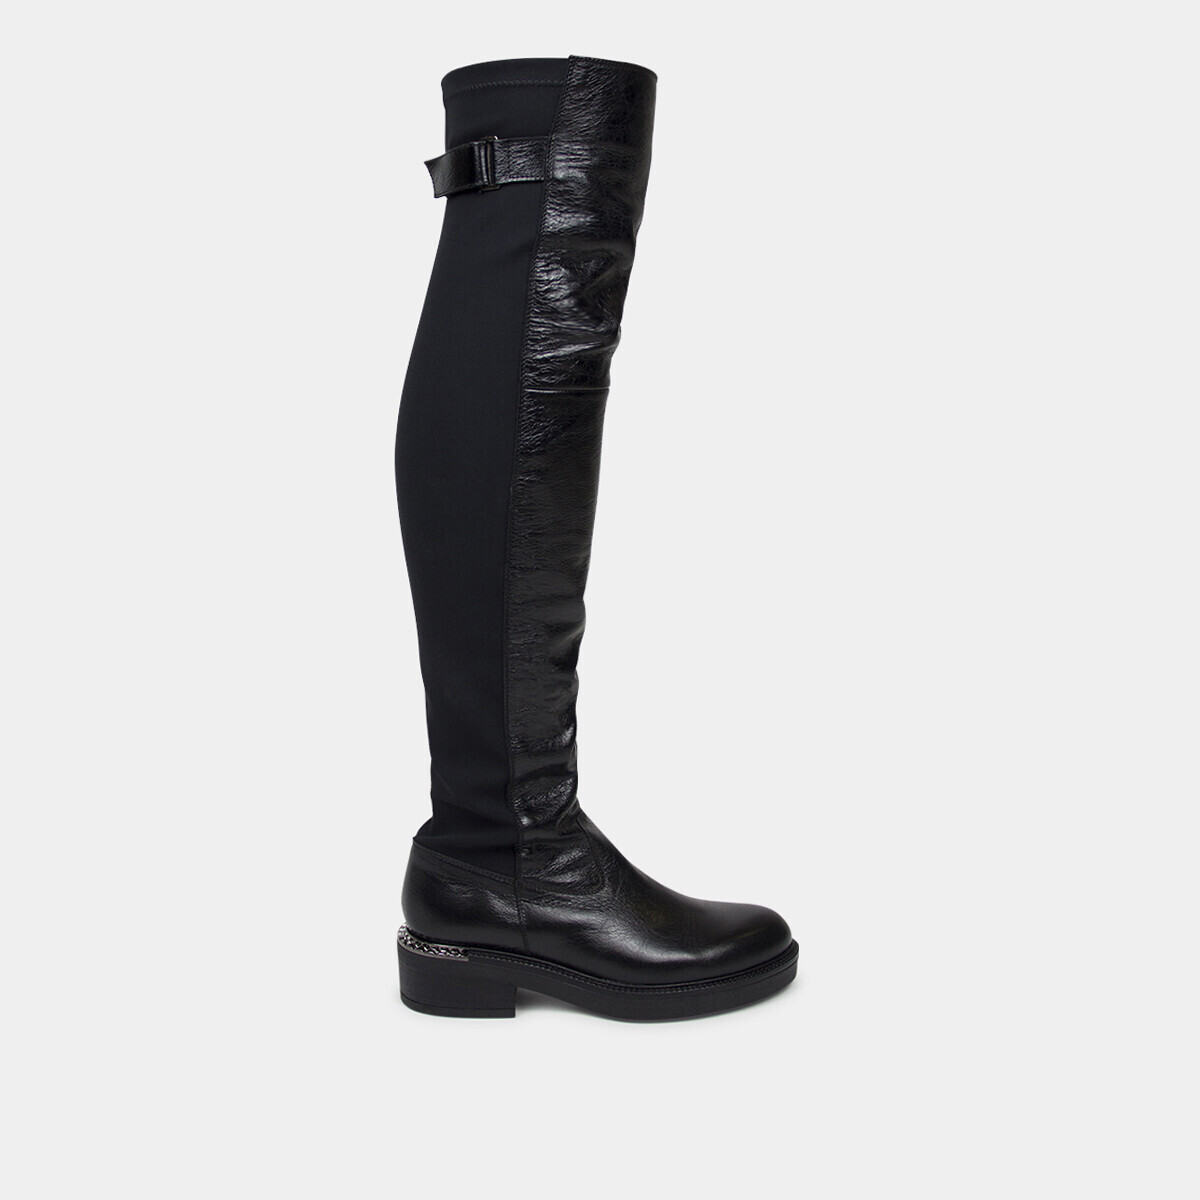 cc3073ce29113 Thigh high boots in black stretch leather - Jonak black